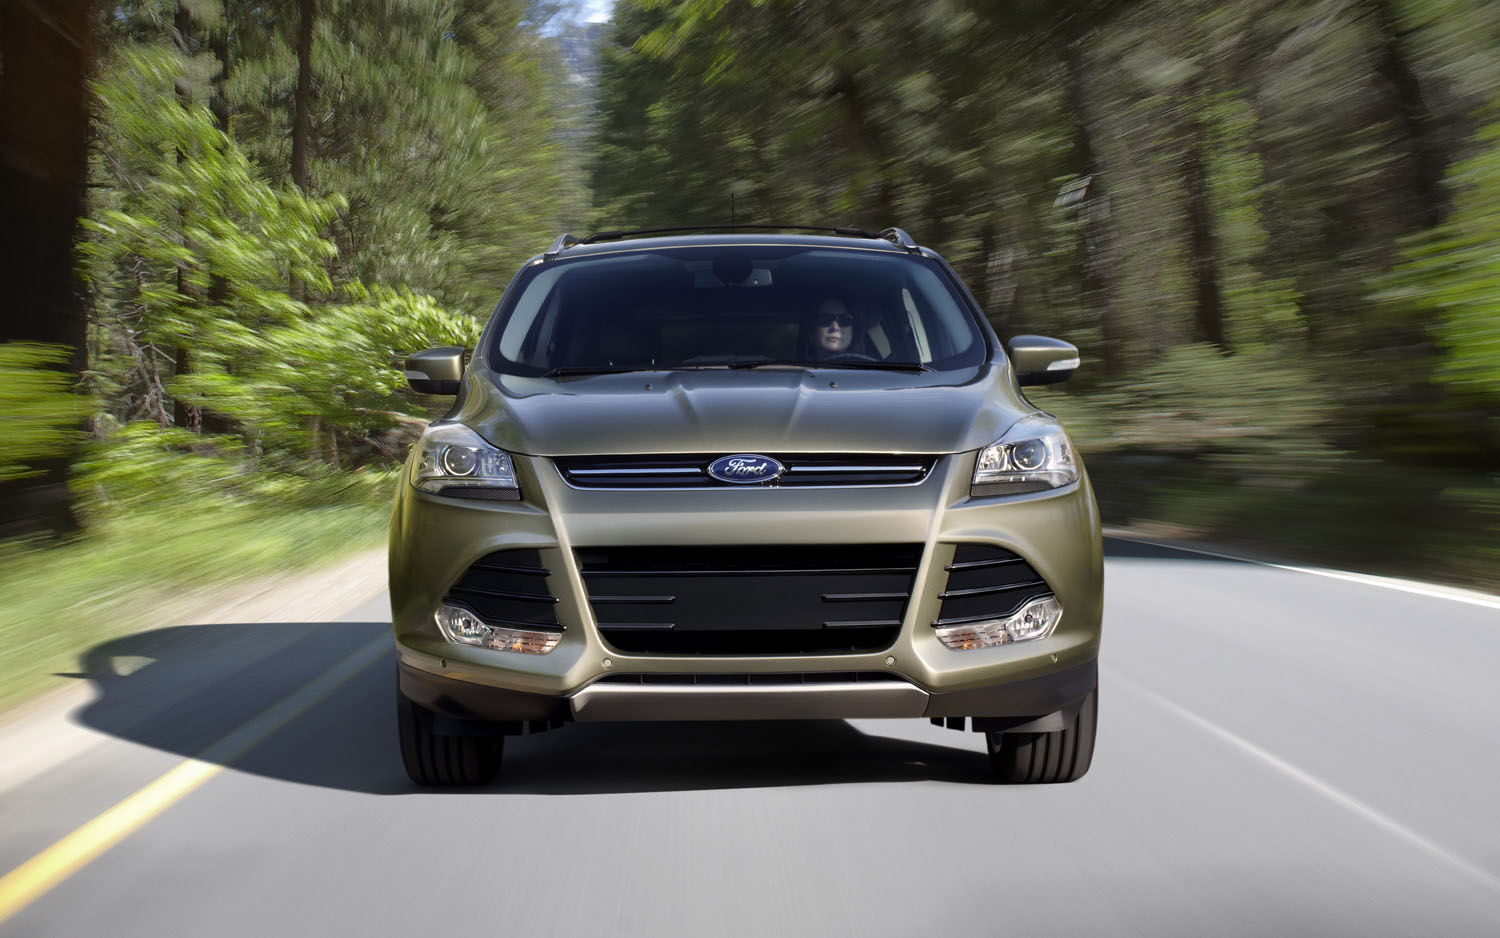 2013 Ford Escape Front View1